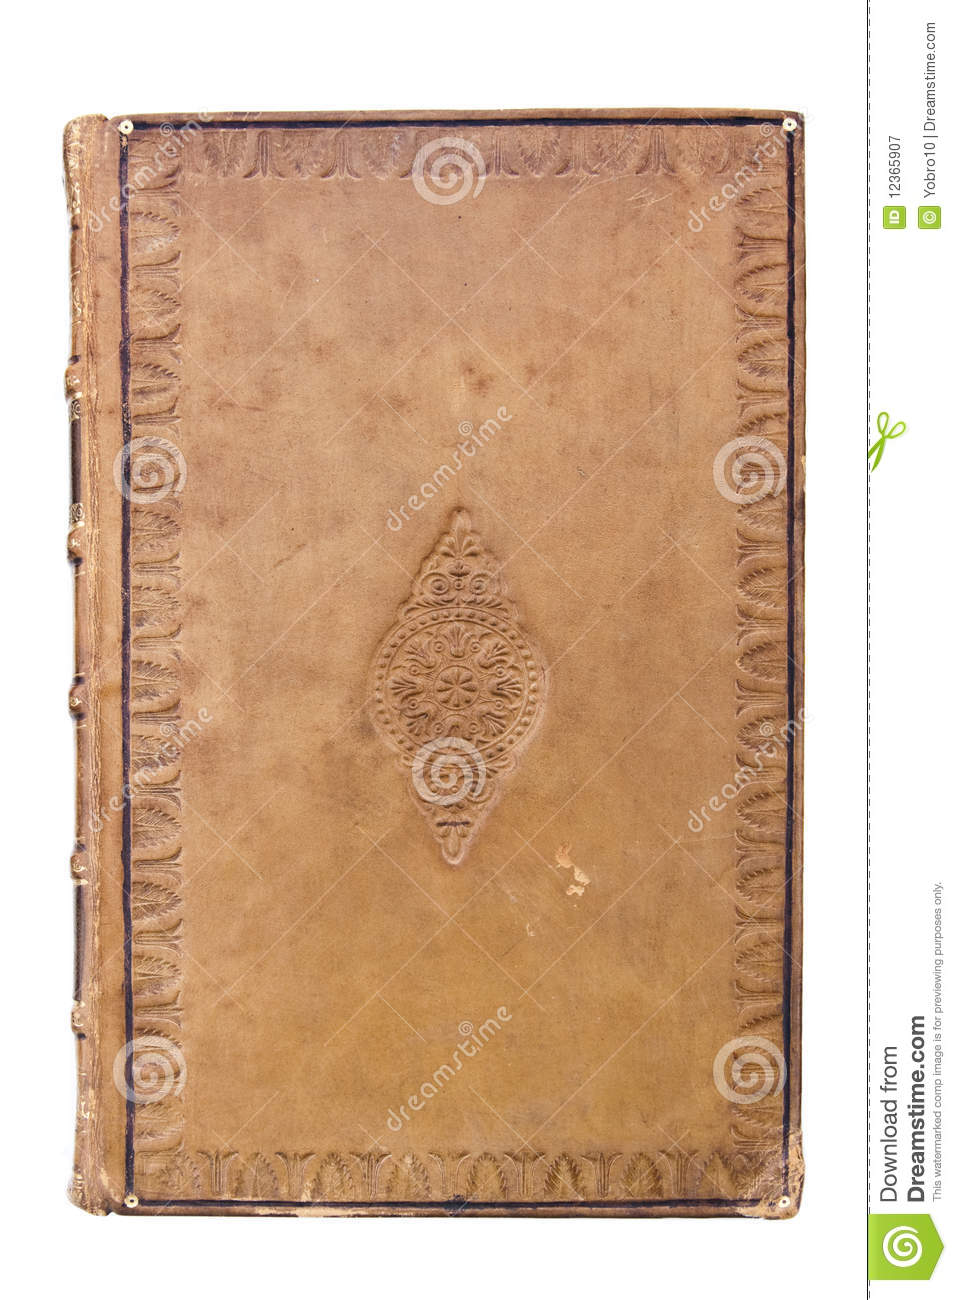 Old Leather Book Cover Images : Antique leather book cover royalty free stock photography